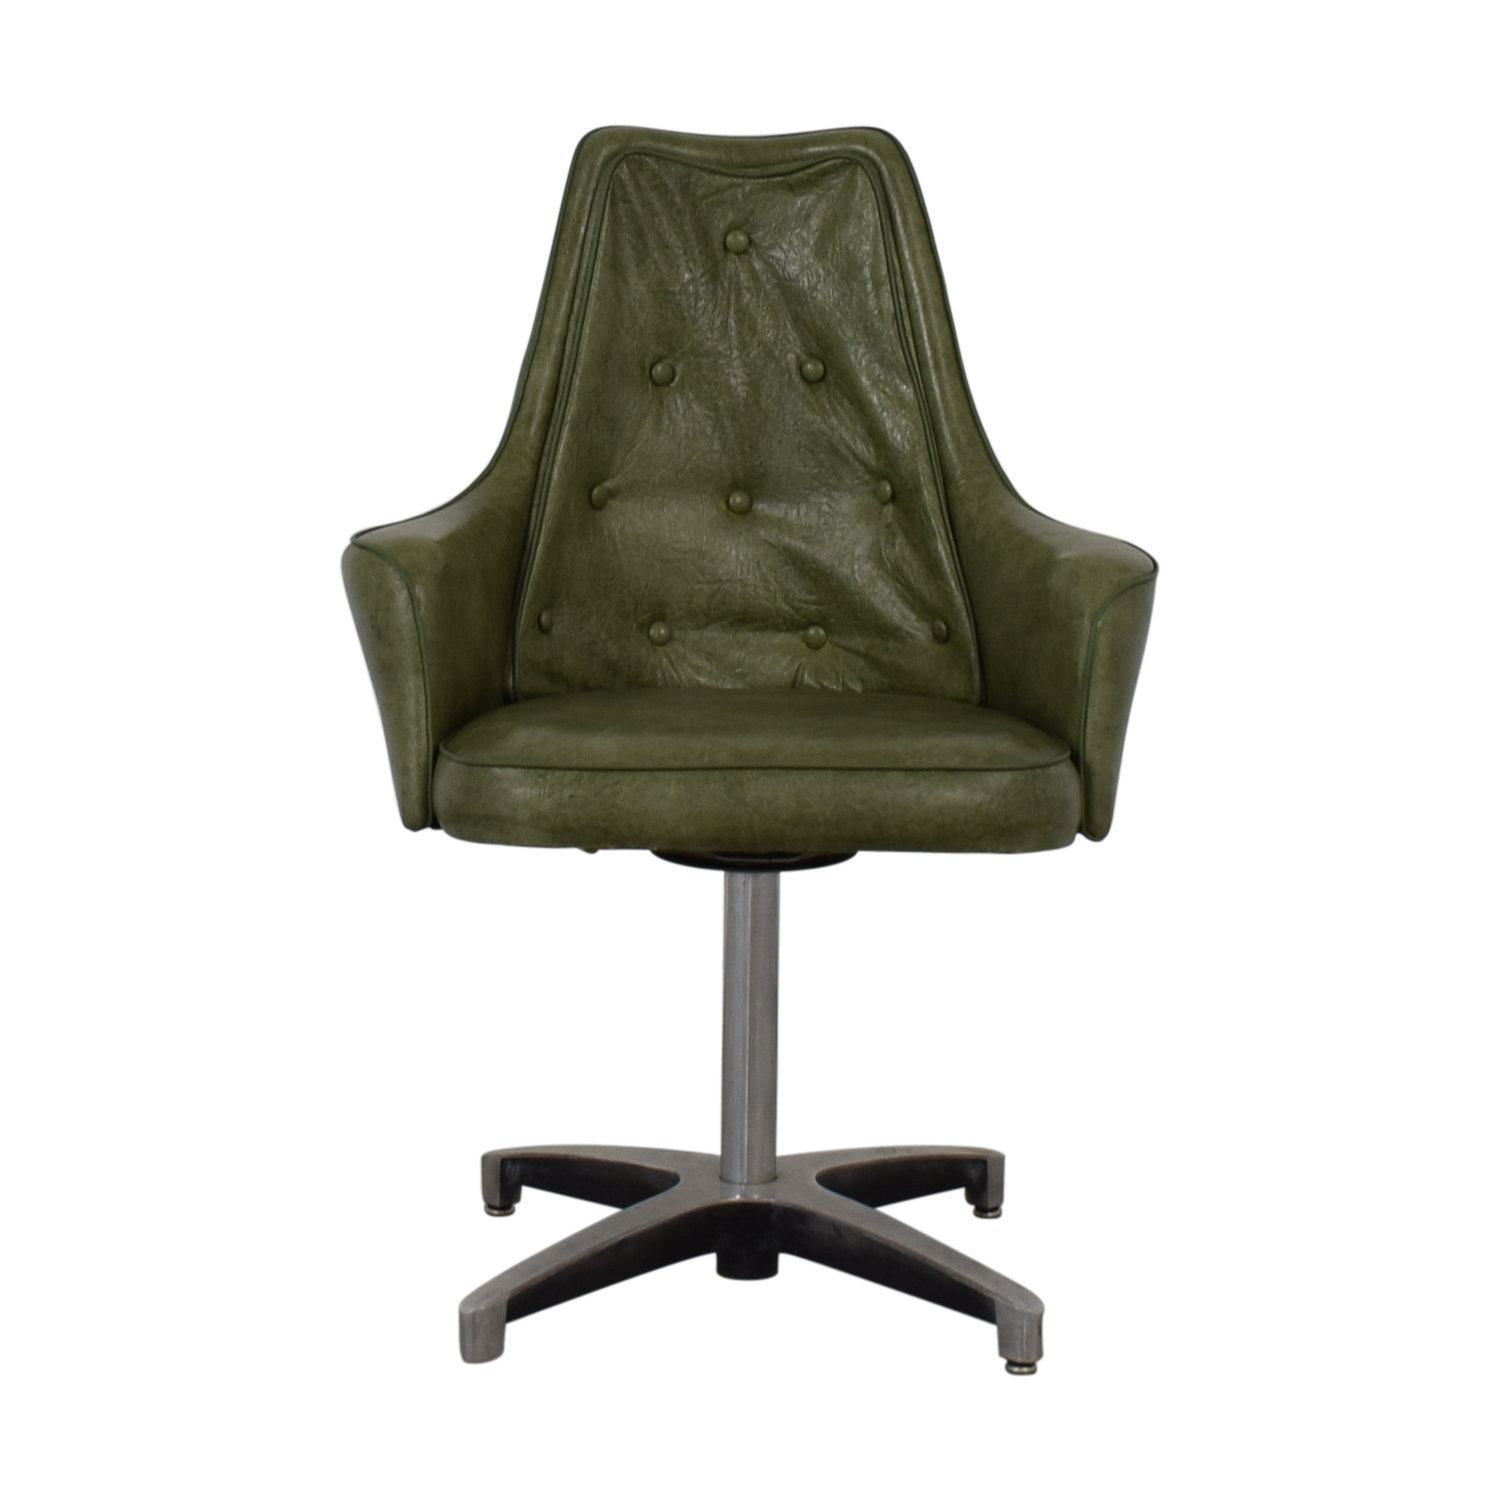 Spartan Chrome Furniture Spartan Chrome Furniture Green Leather Chair Chairs